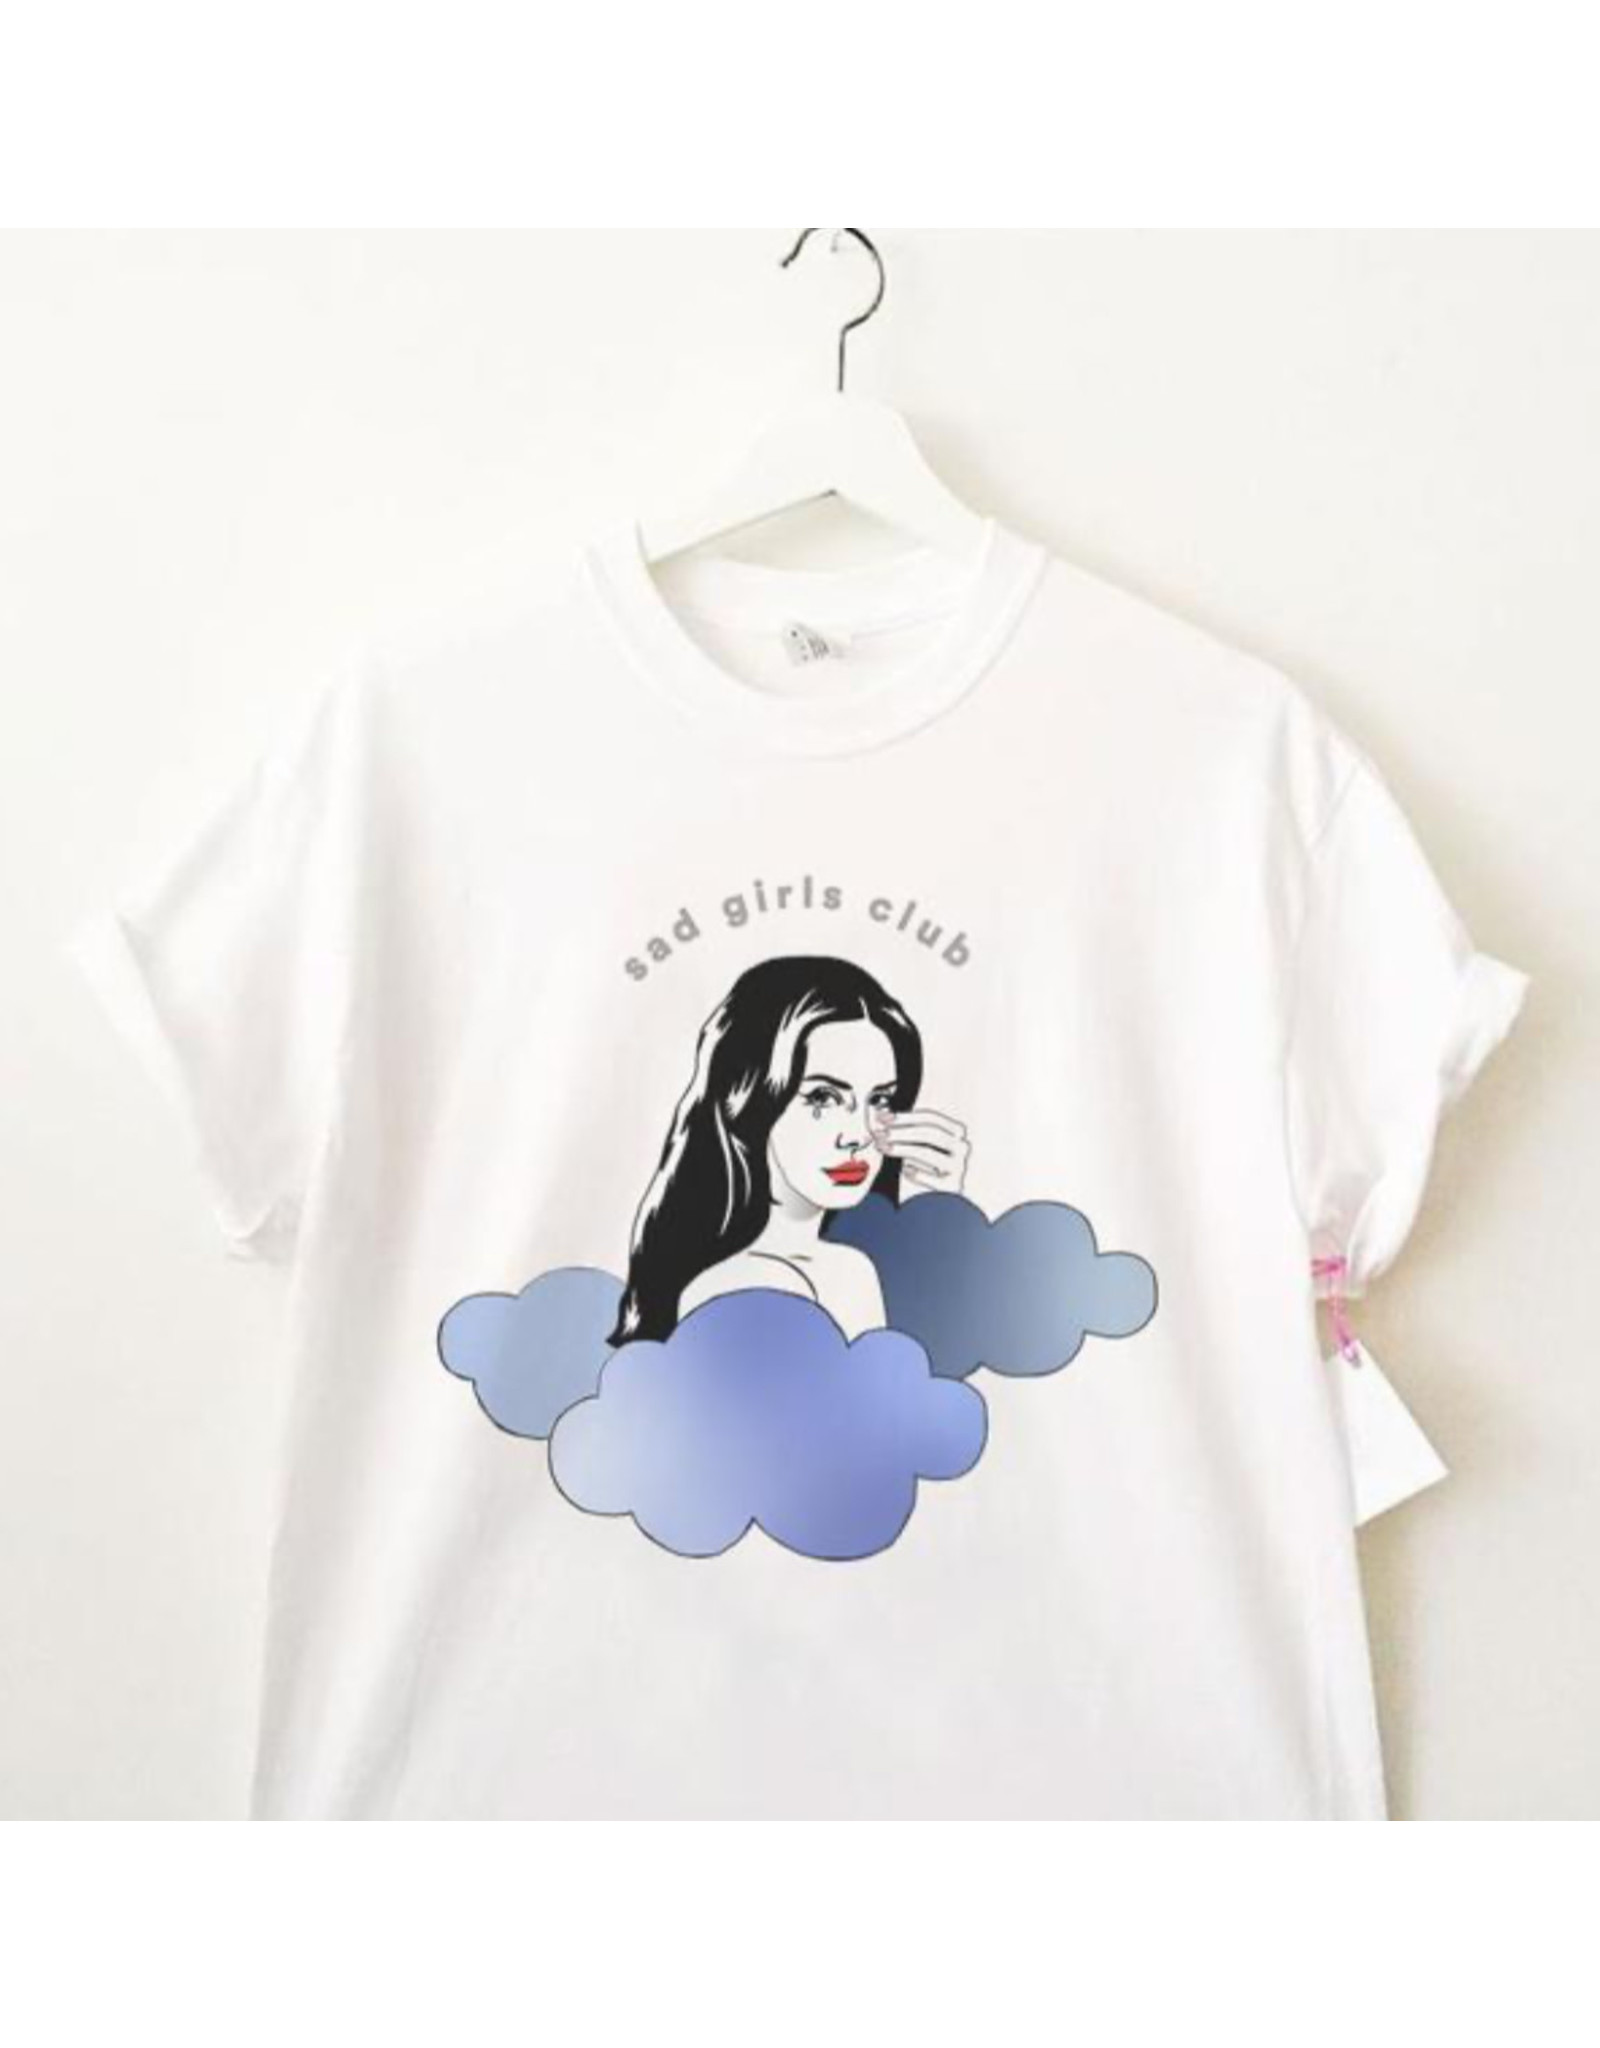 Spilt Milk T-shirt unisexe Sad girls club